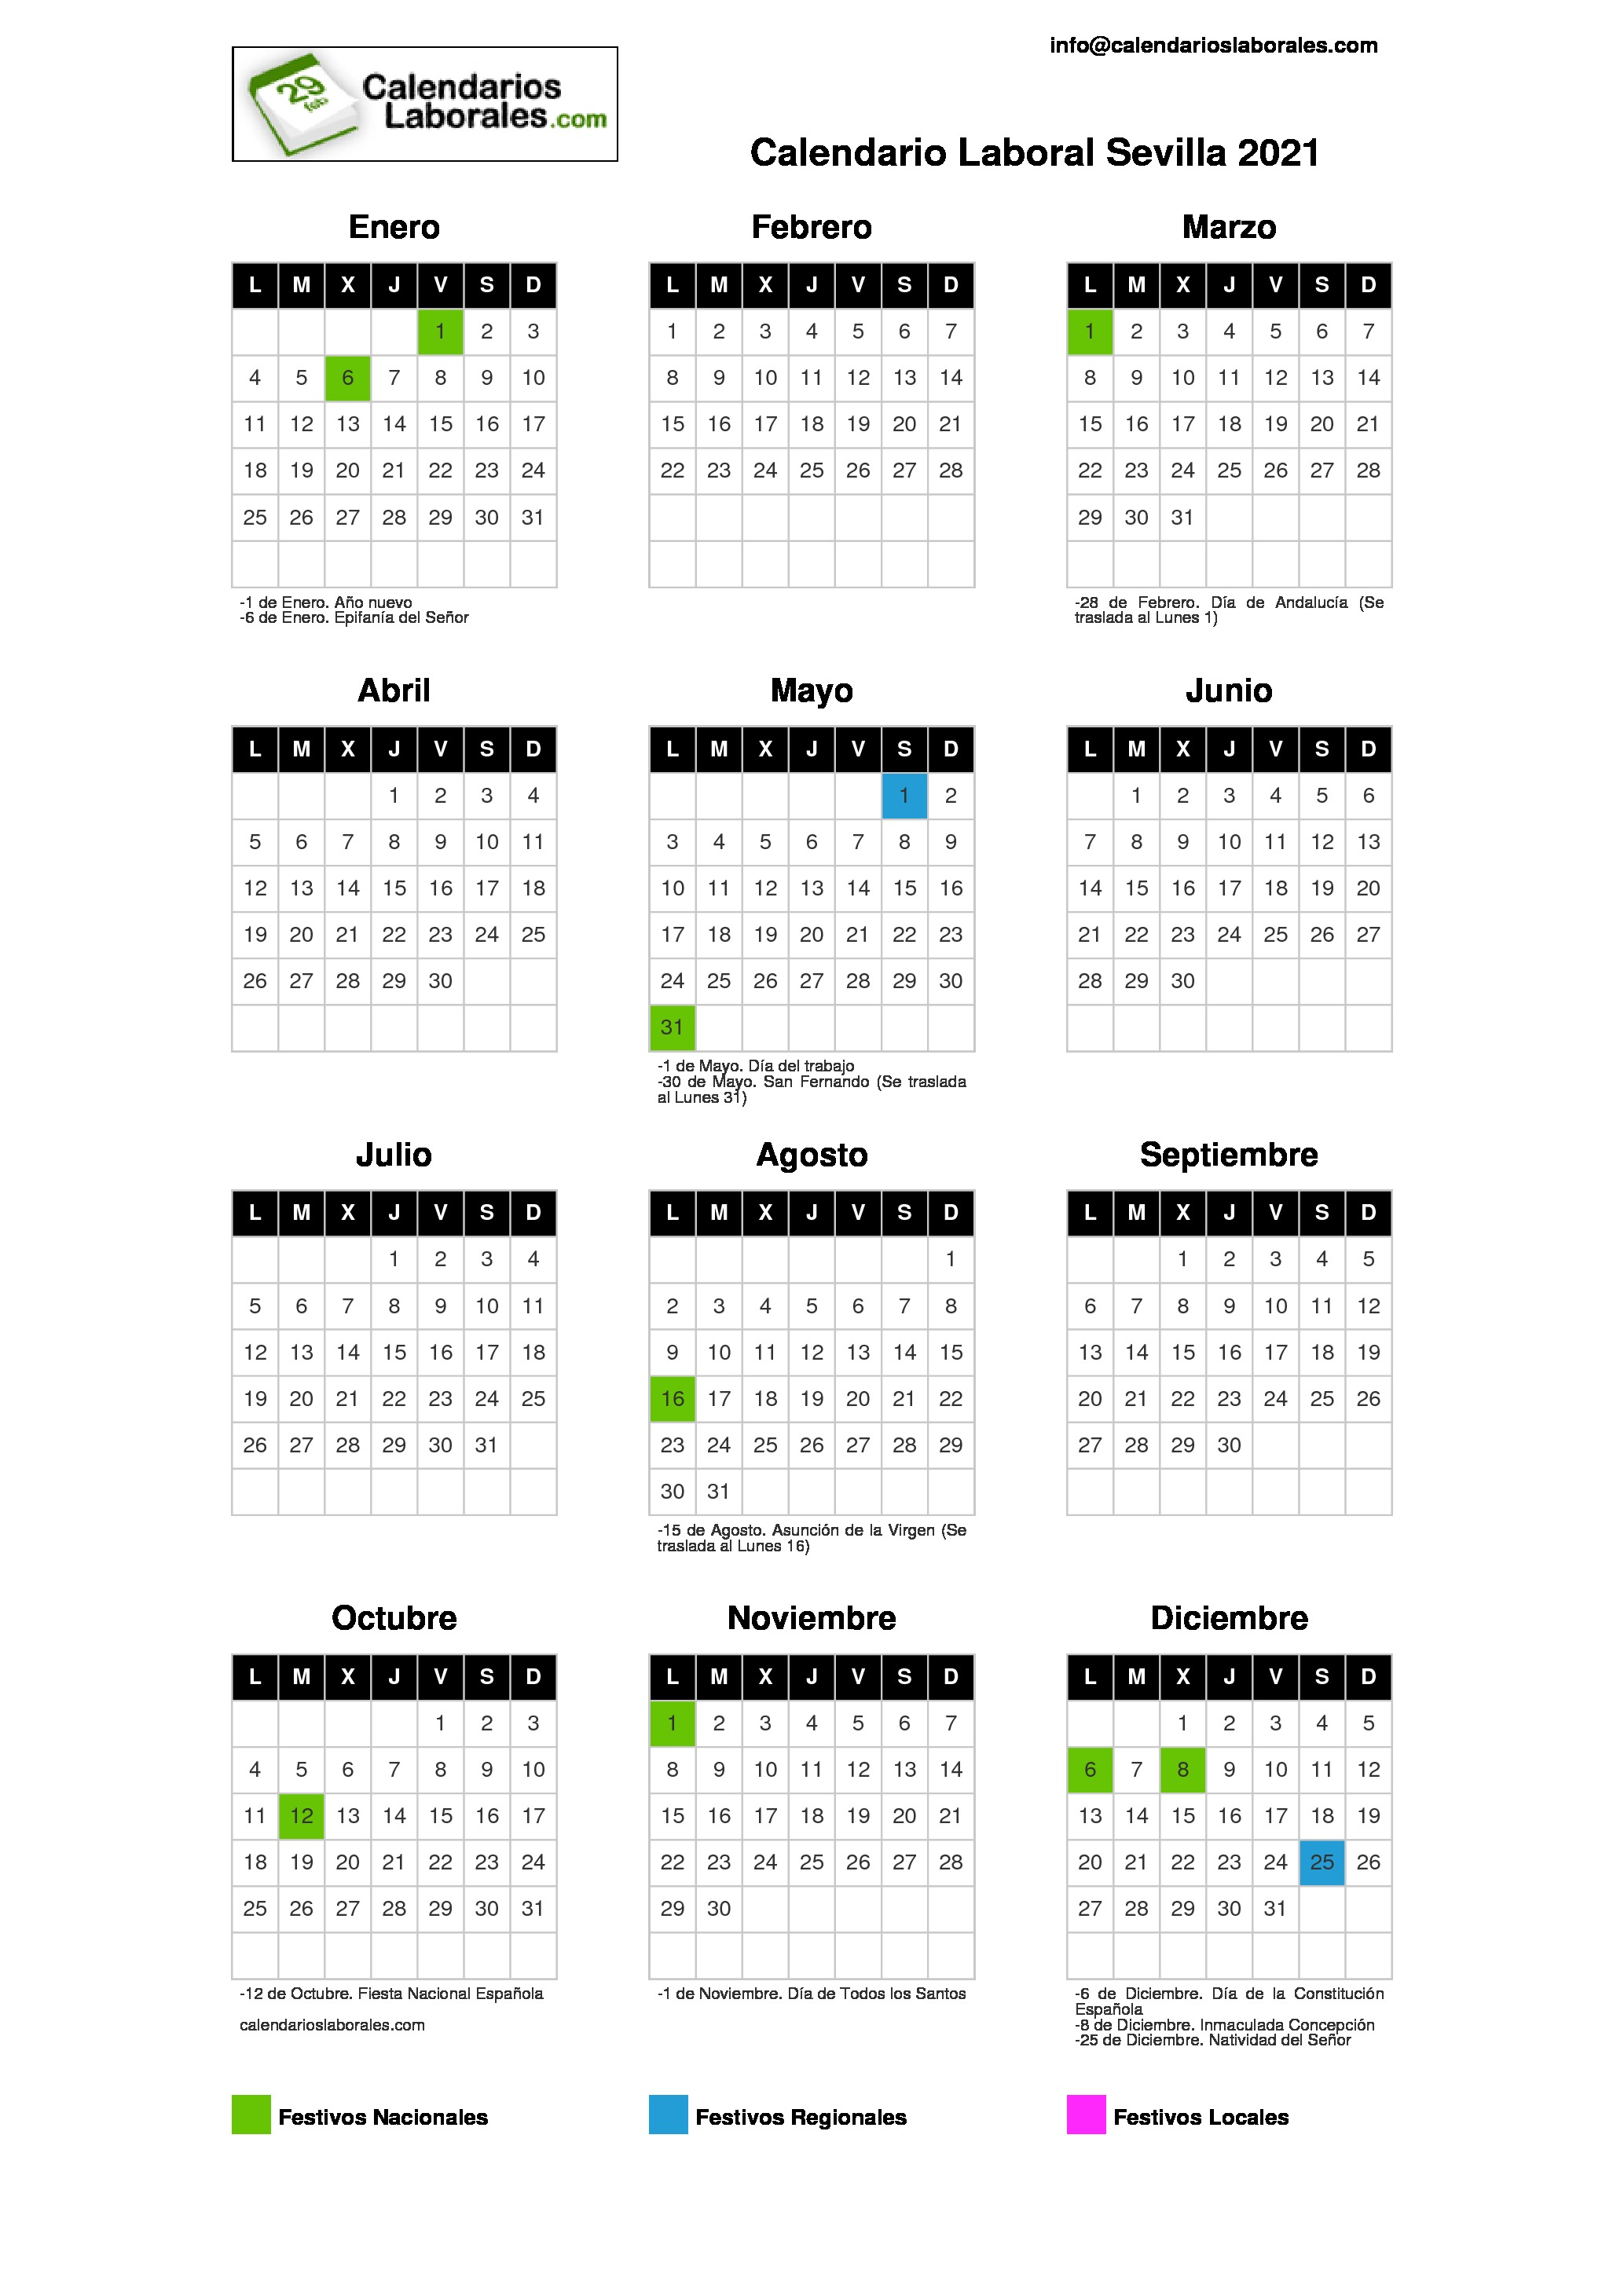 Calendario Laboral Sevilla 2021